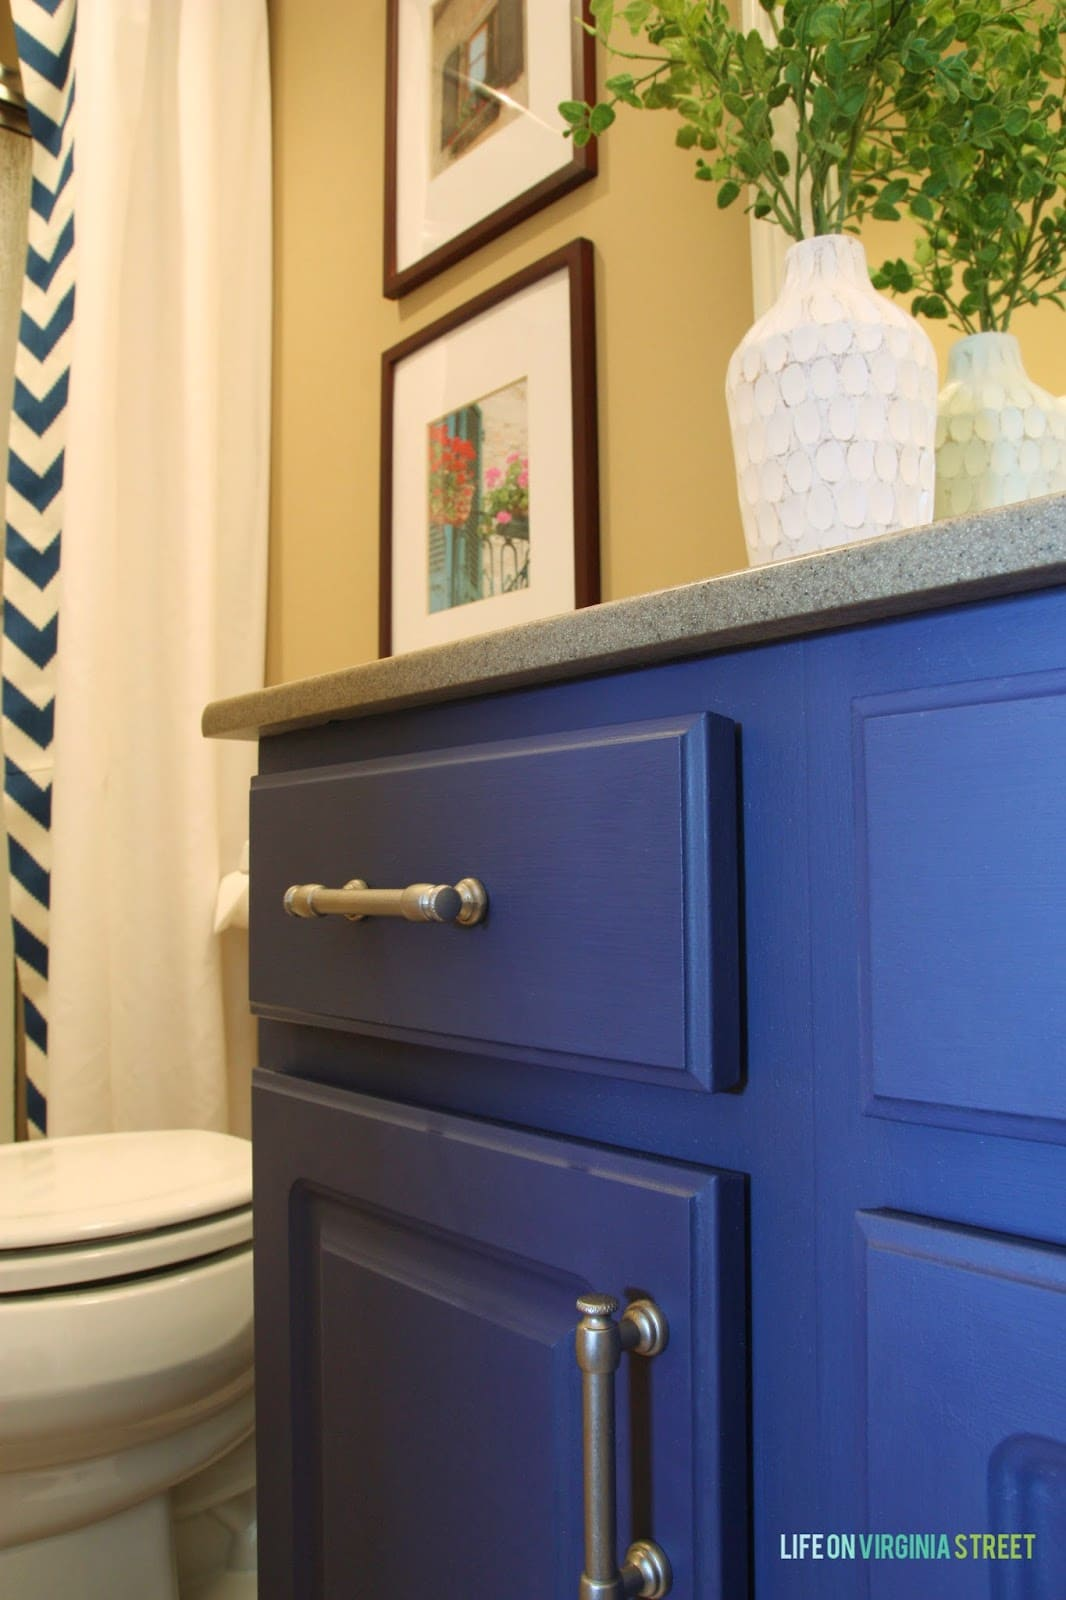 Painted laminate bathroom cabinets in bold blue.